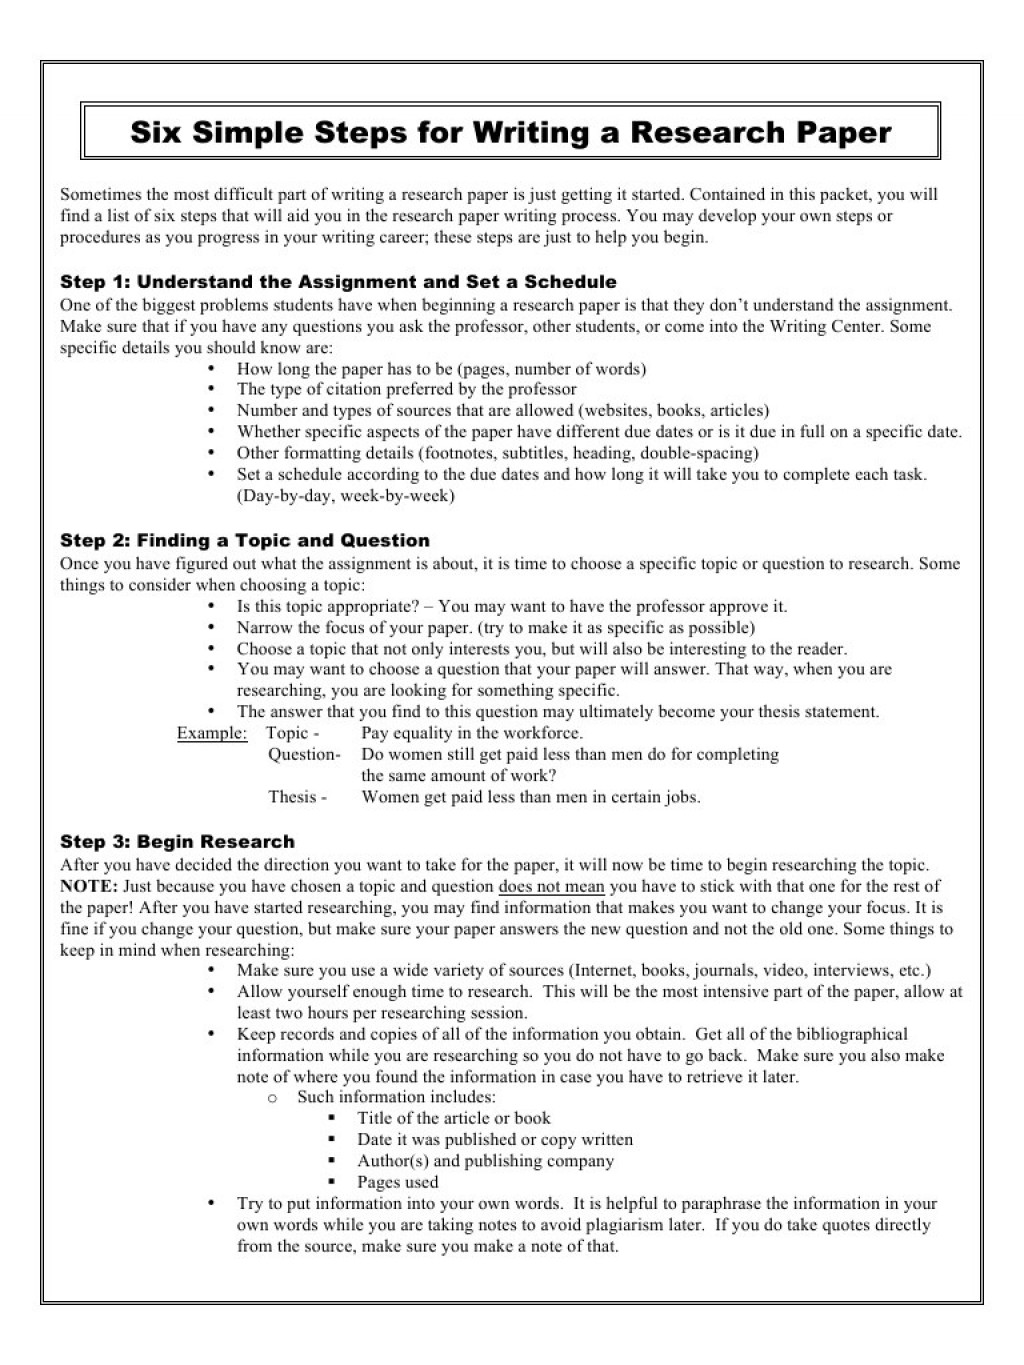 017 Preview Simple Steps For Writing Research Paper Breathtaking A In Ppt 10 To Write Basic Easy Large